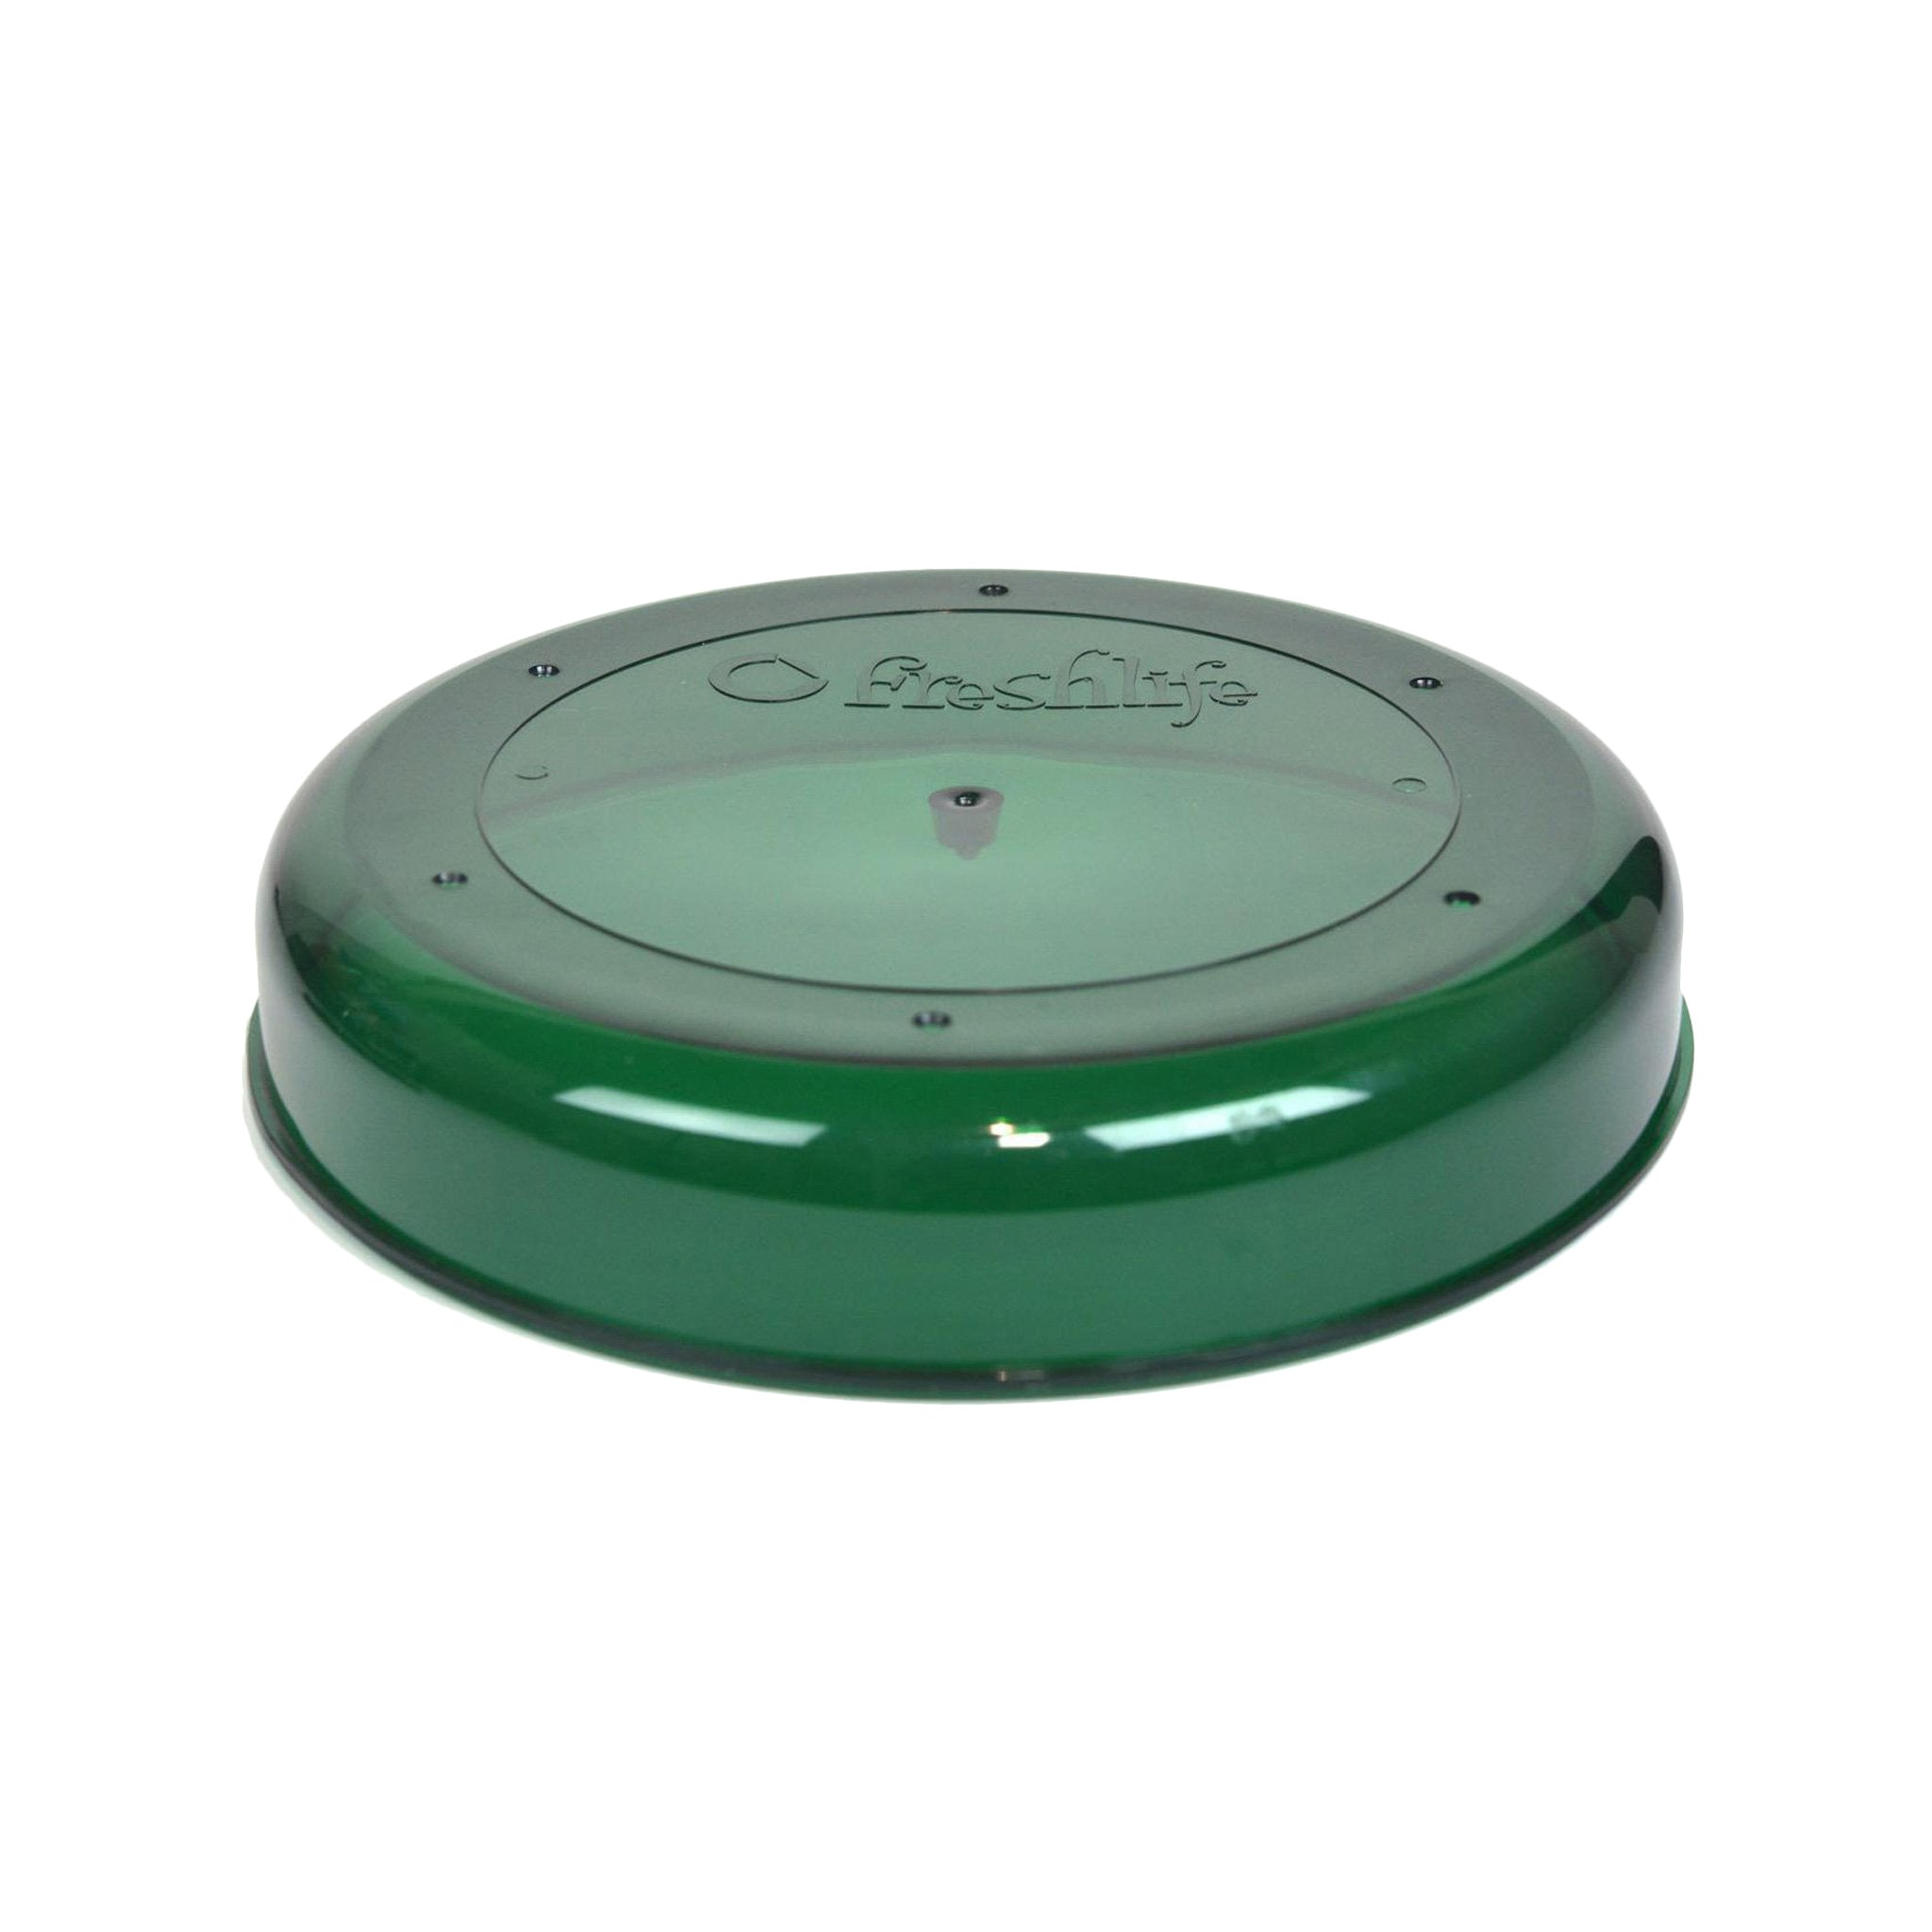 Green replacement top lid for the Freshlife® Automatic Sprouter, FL-3000. Can also fit the FL-2000 or FL-1000.